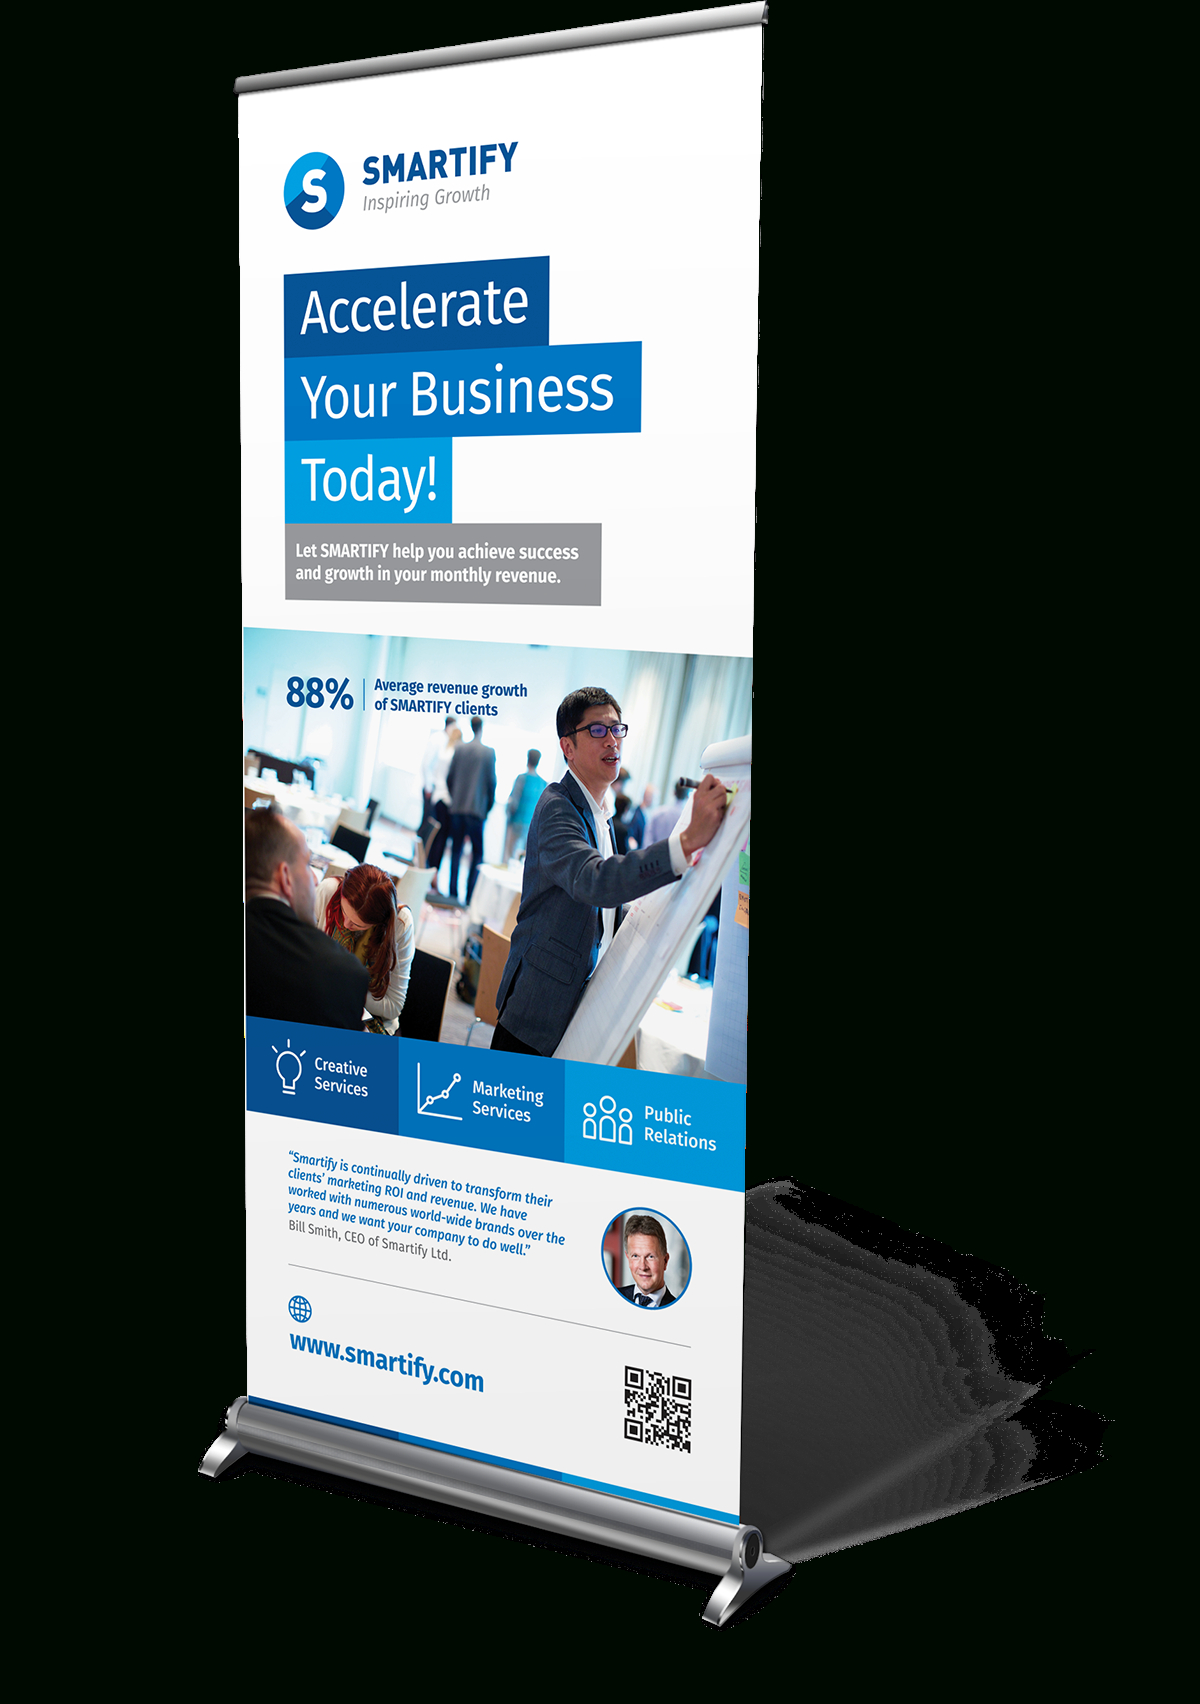 Corporate Business Roll Up Banners Template For Download For Retractable Banner Design Templates